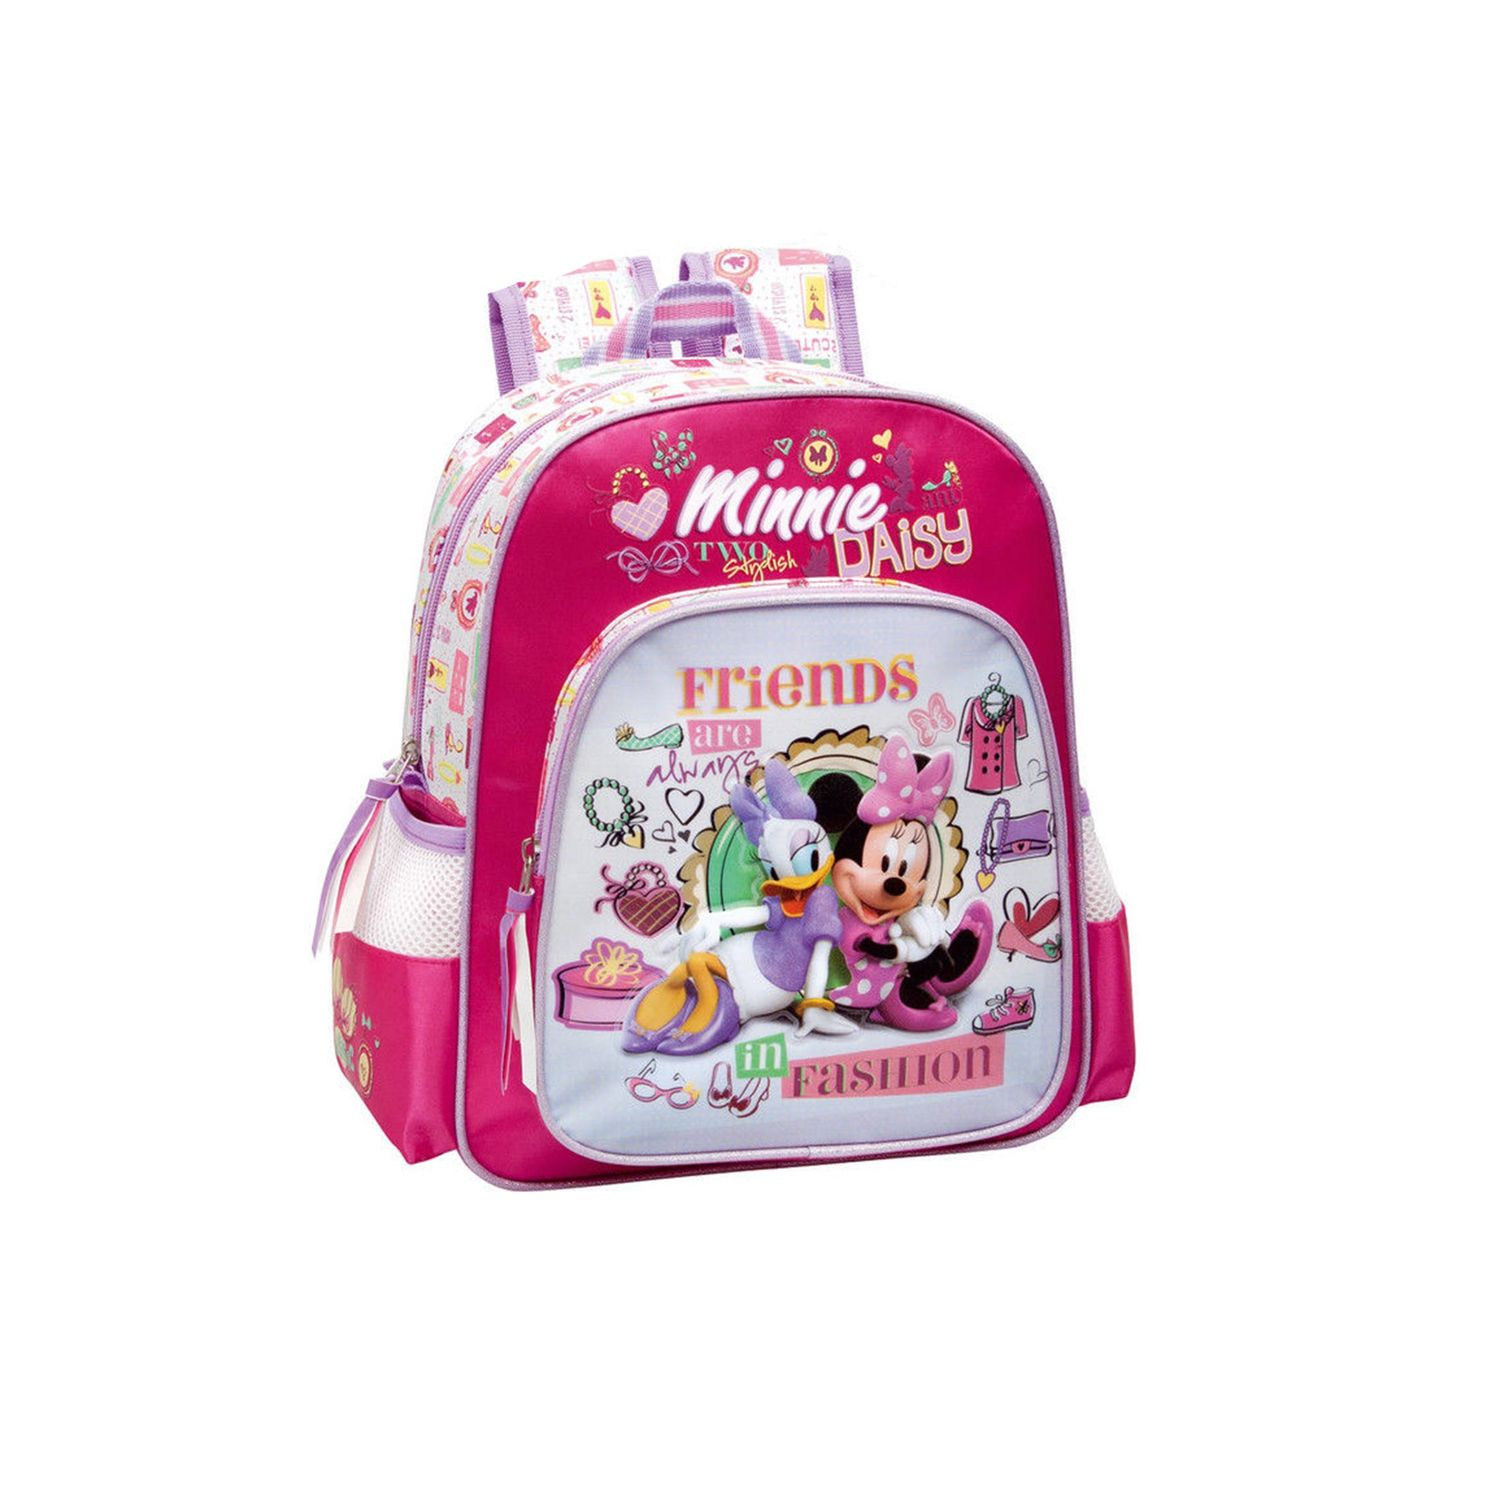 Minnie Mouse Daisy Premium Junior Backpack